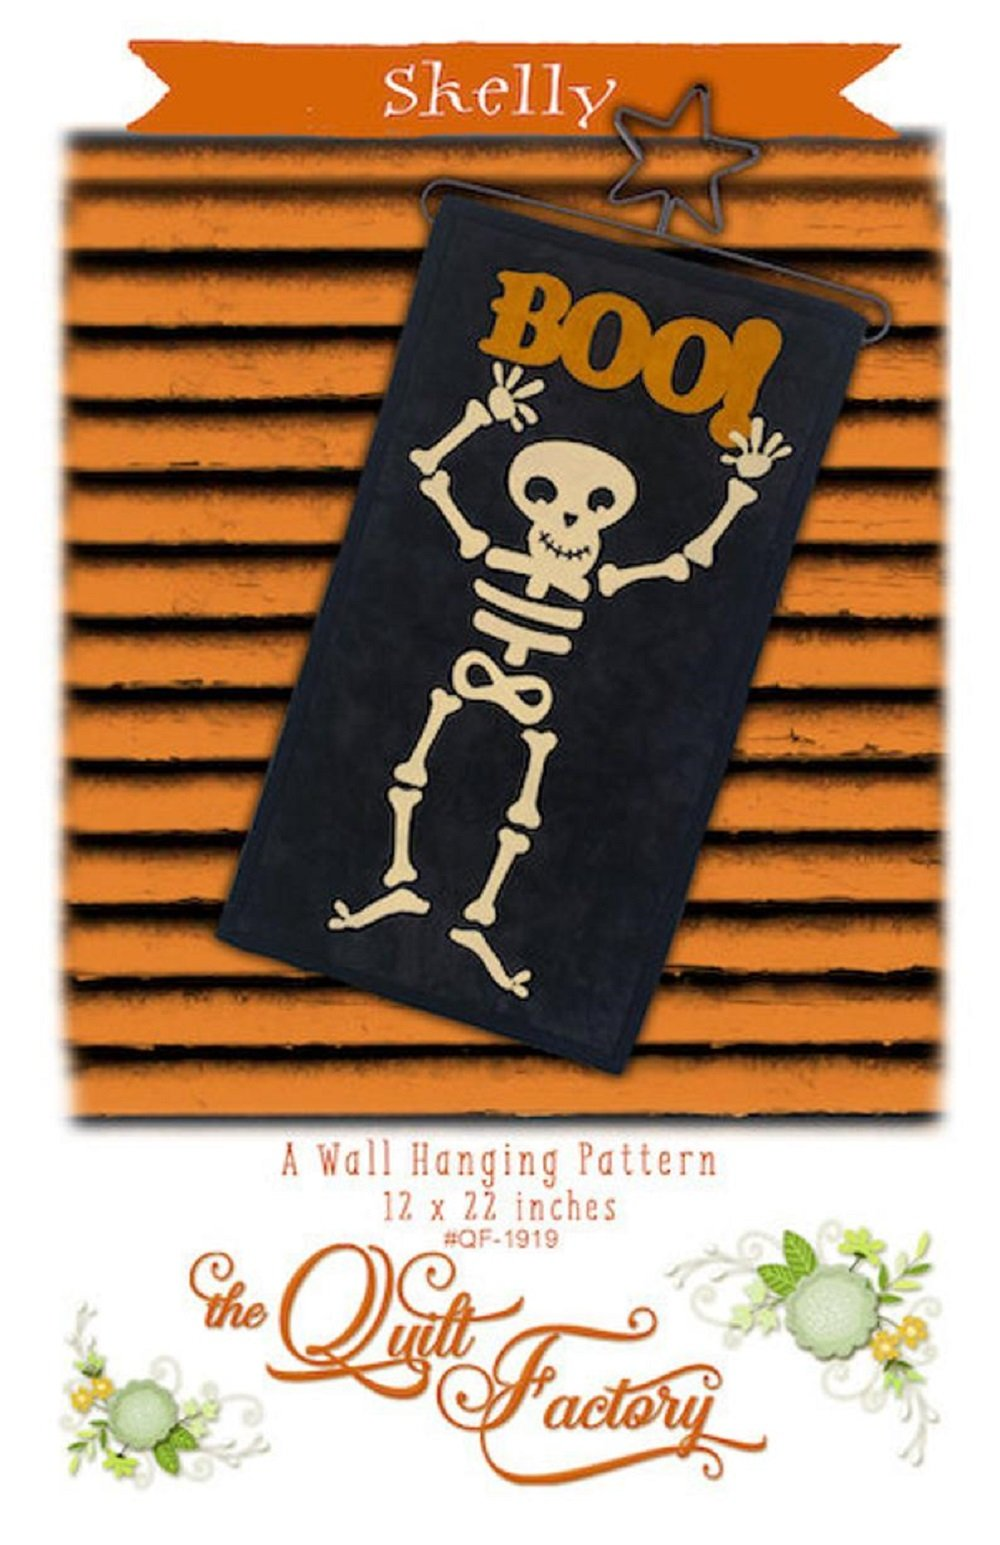 Skelly Wall Hanging Pattern by The Quilt Factory